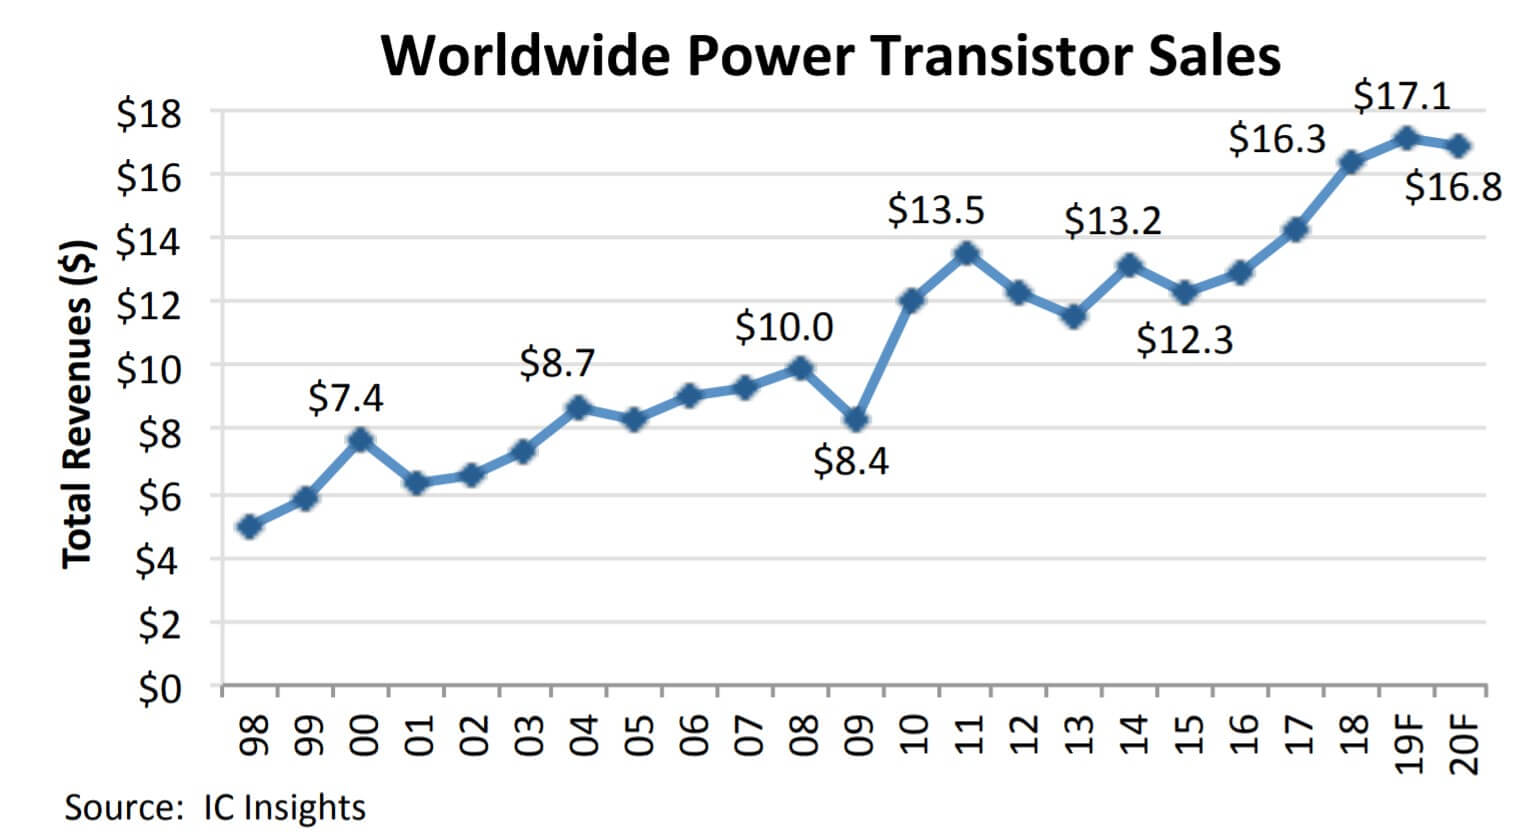 2018 global power transistor sales hit a new high-SemiMedia